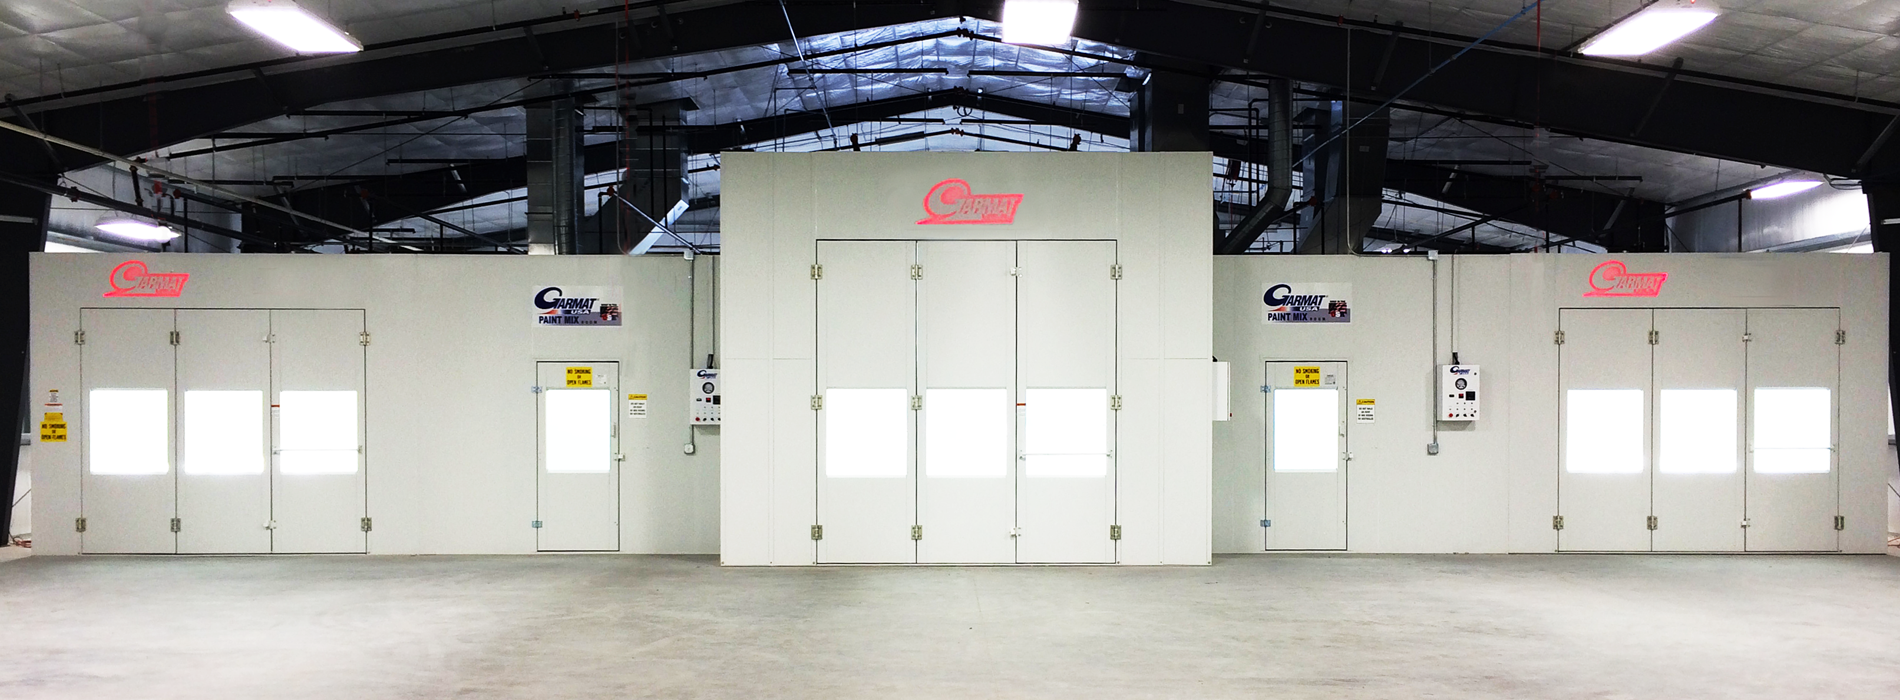 Best Paint Booth For Your Body Shop(1)